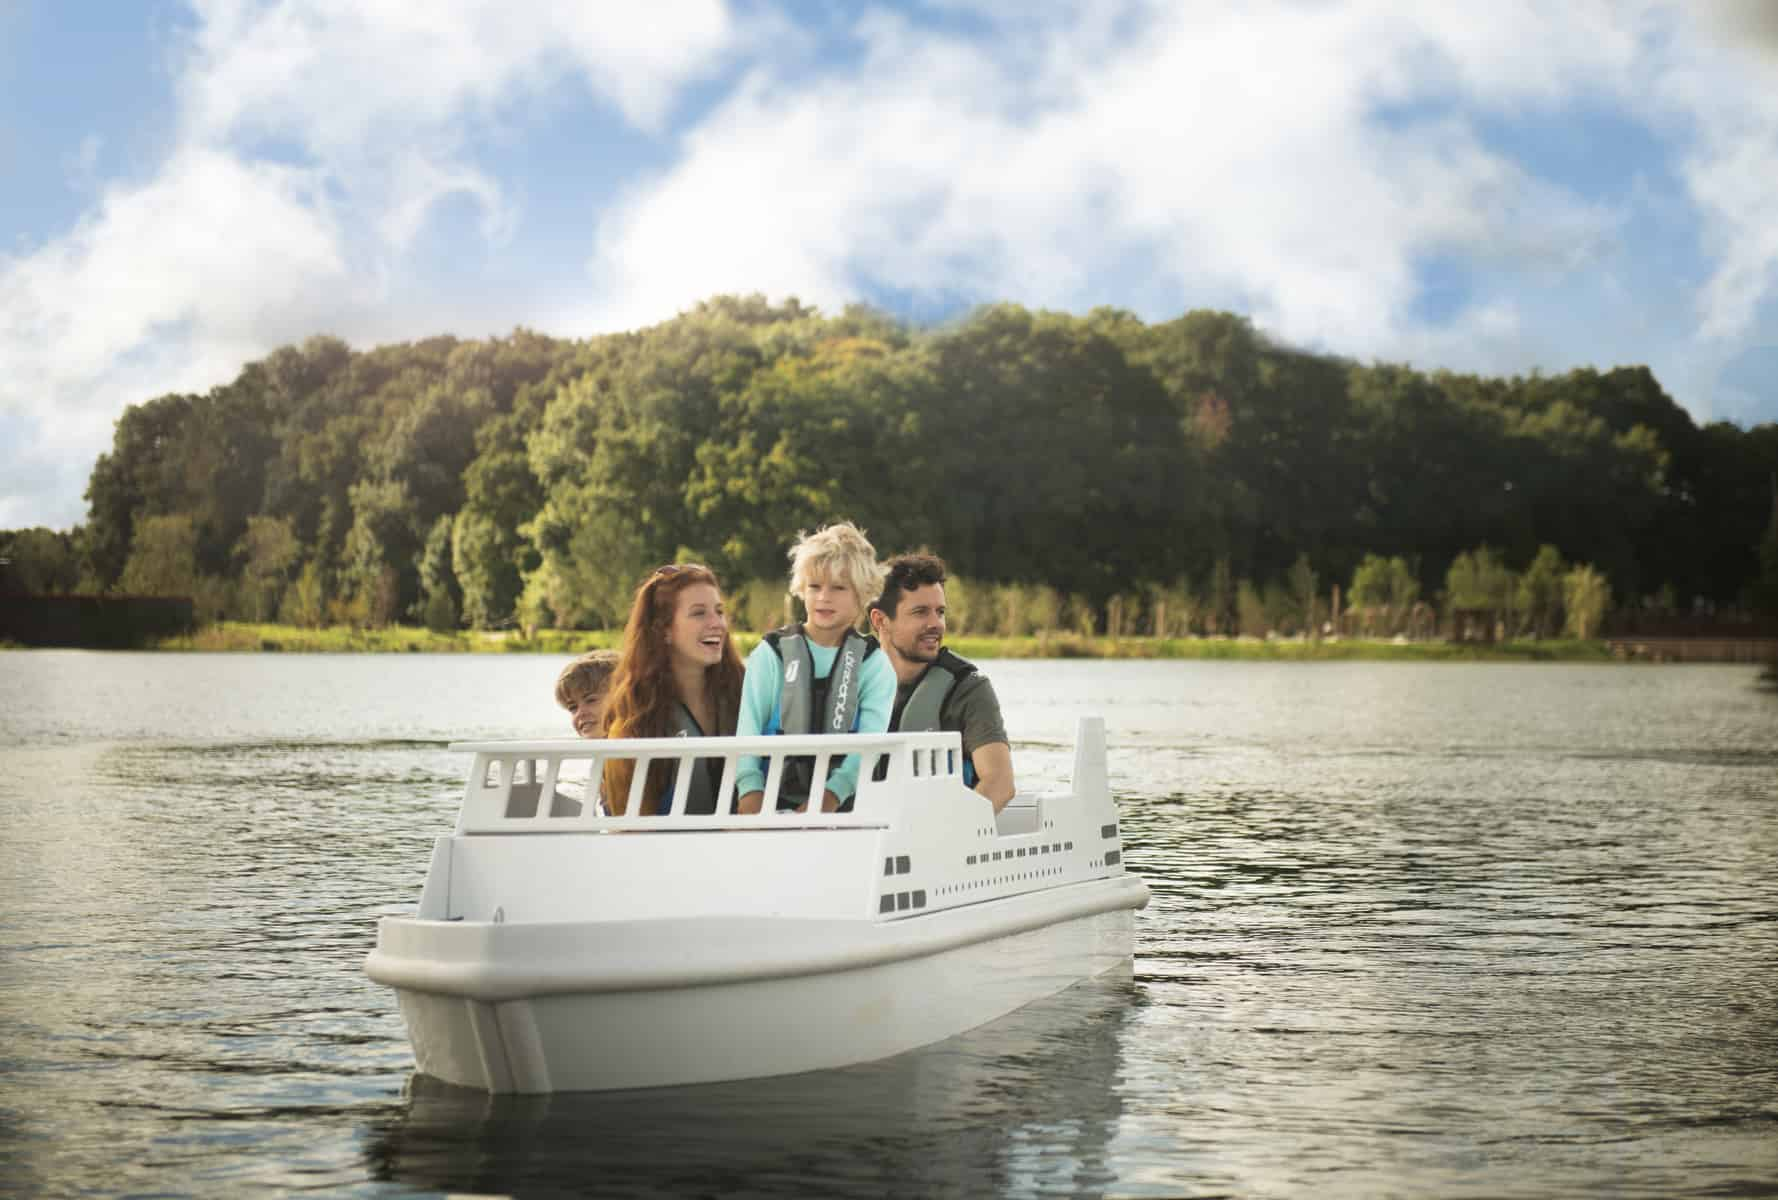 People riding in a small white boat on a lake with trees in the background